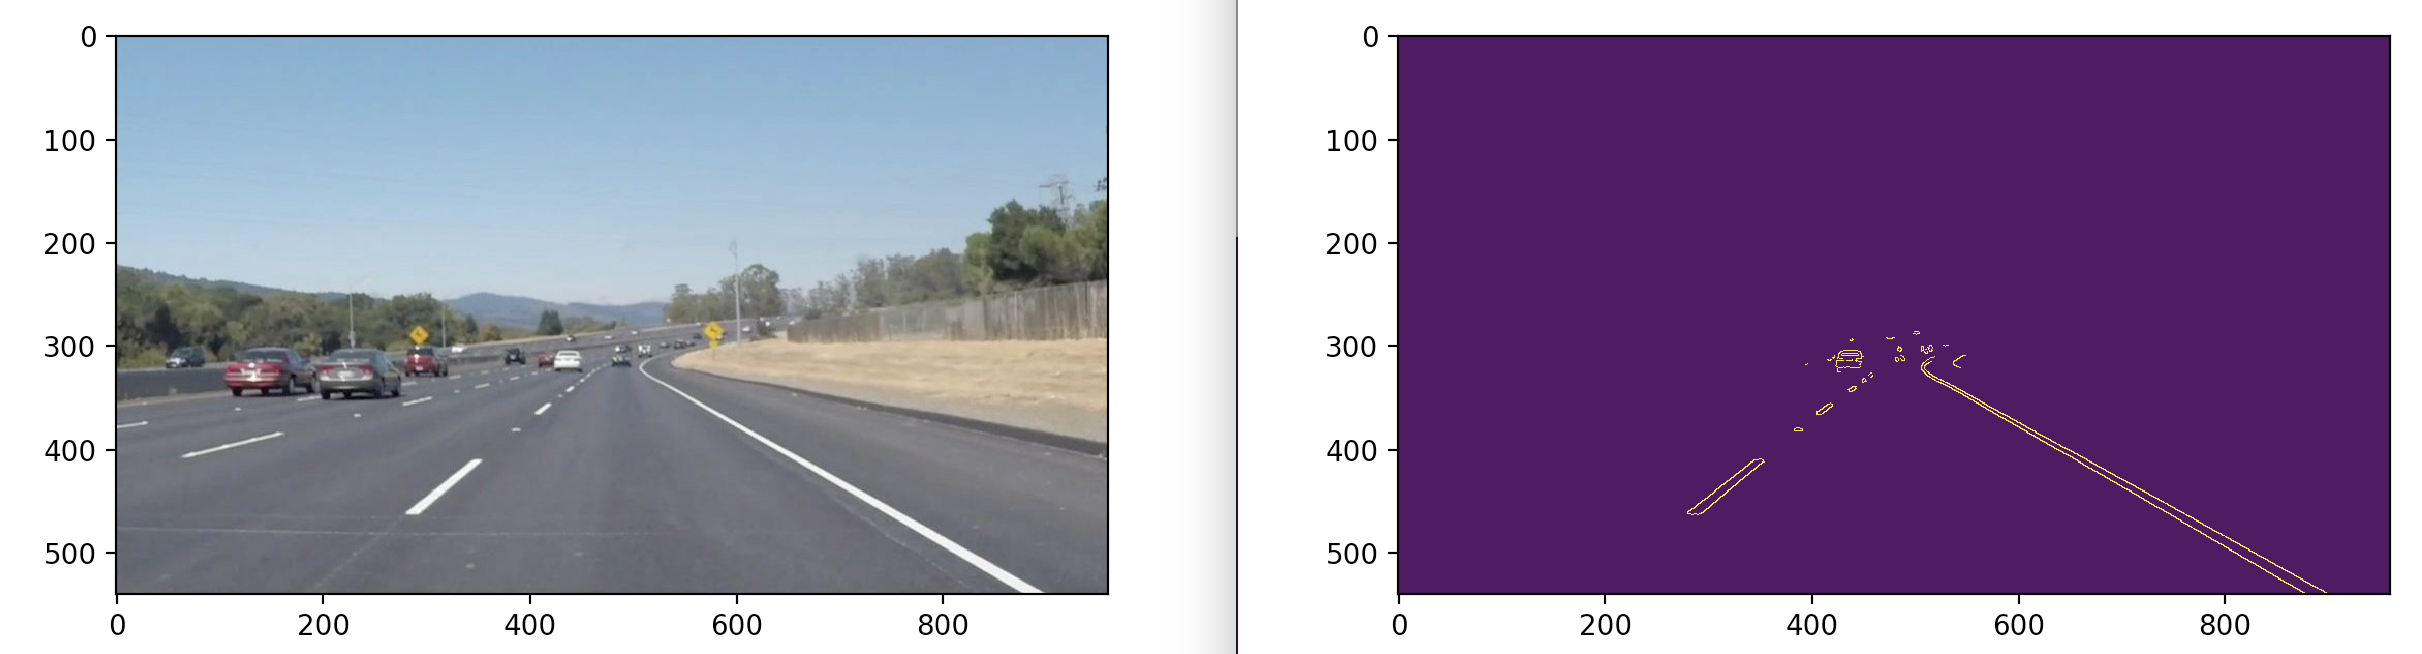 Simple Lane Detection with OpenCV - Matt Hardwick - Medium